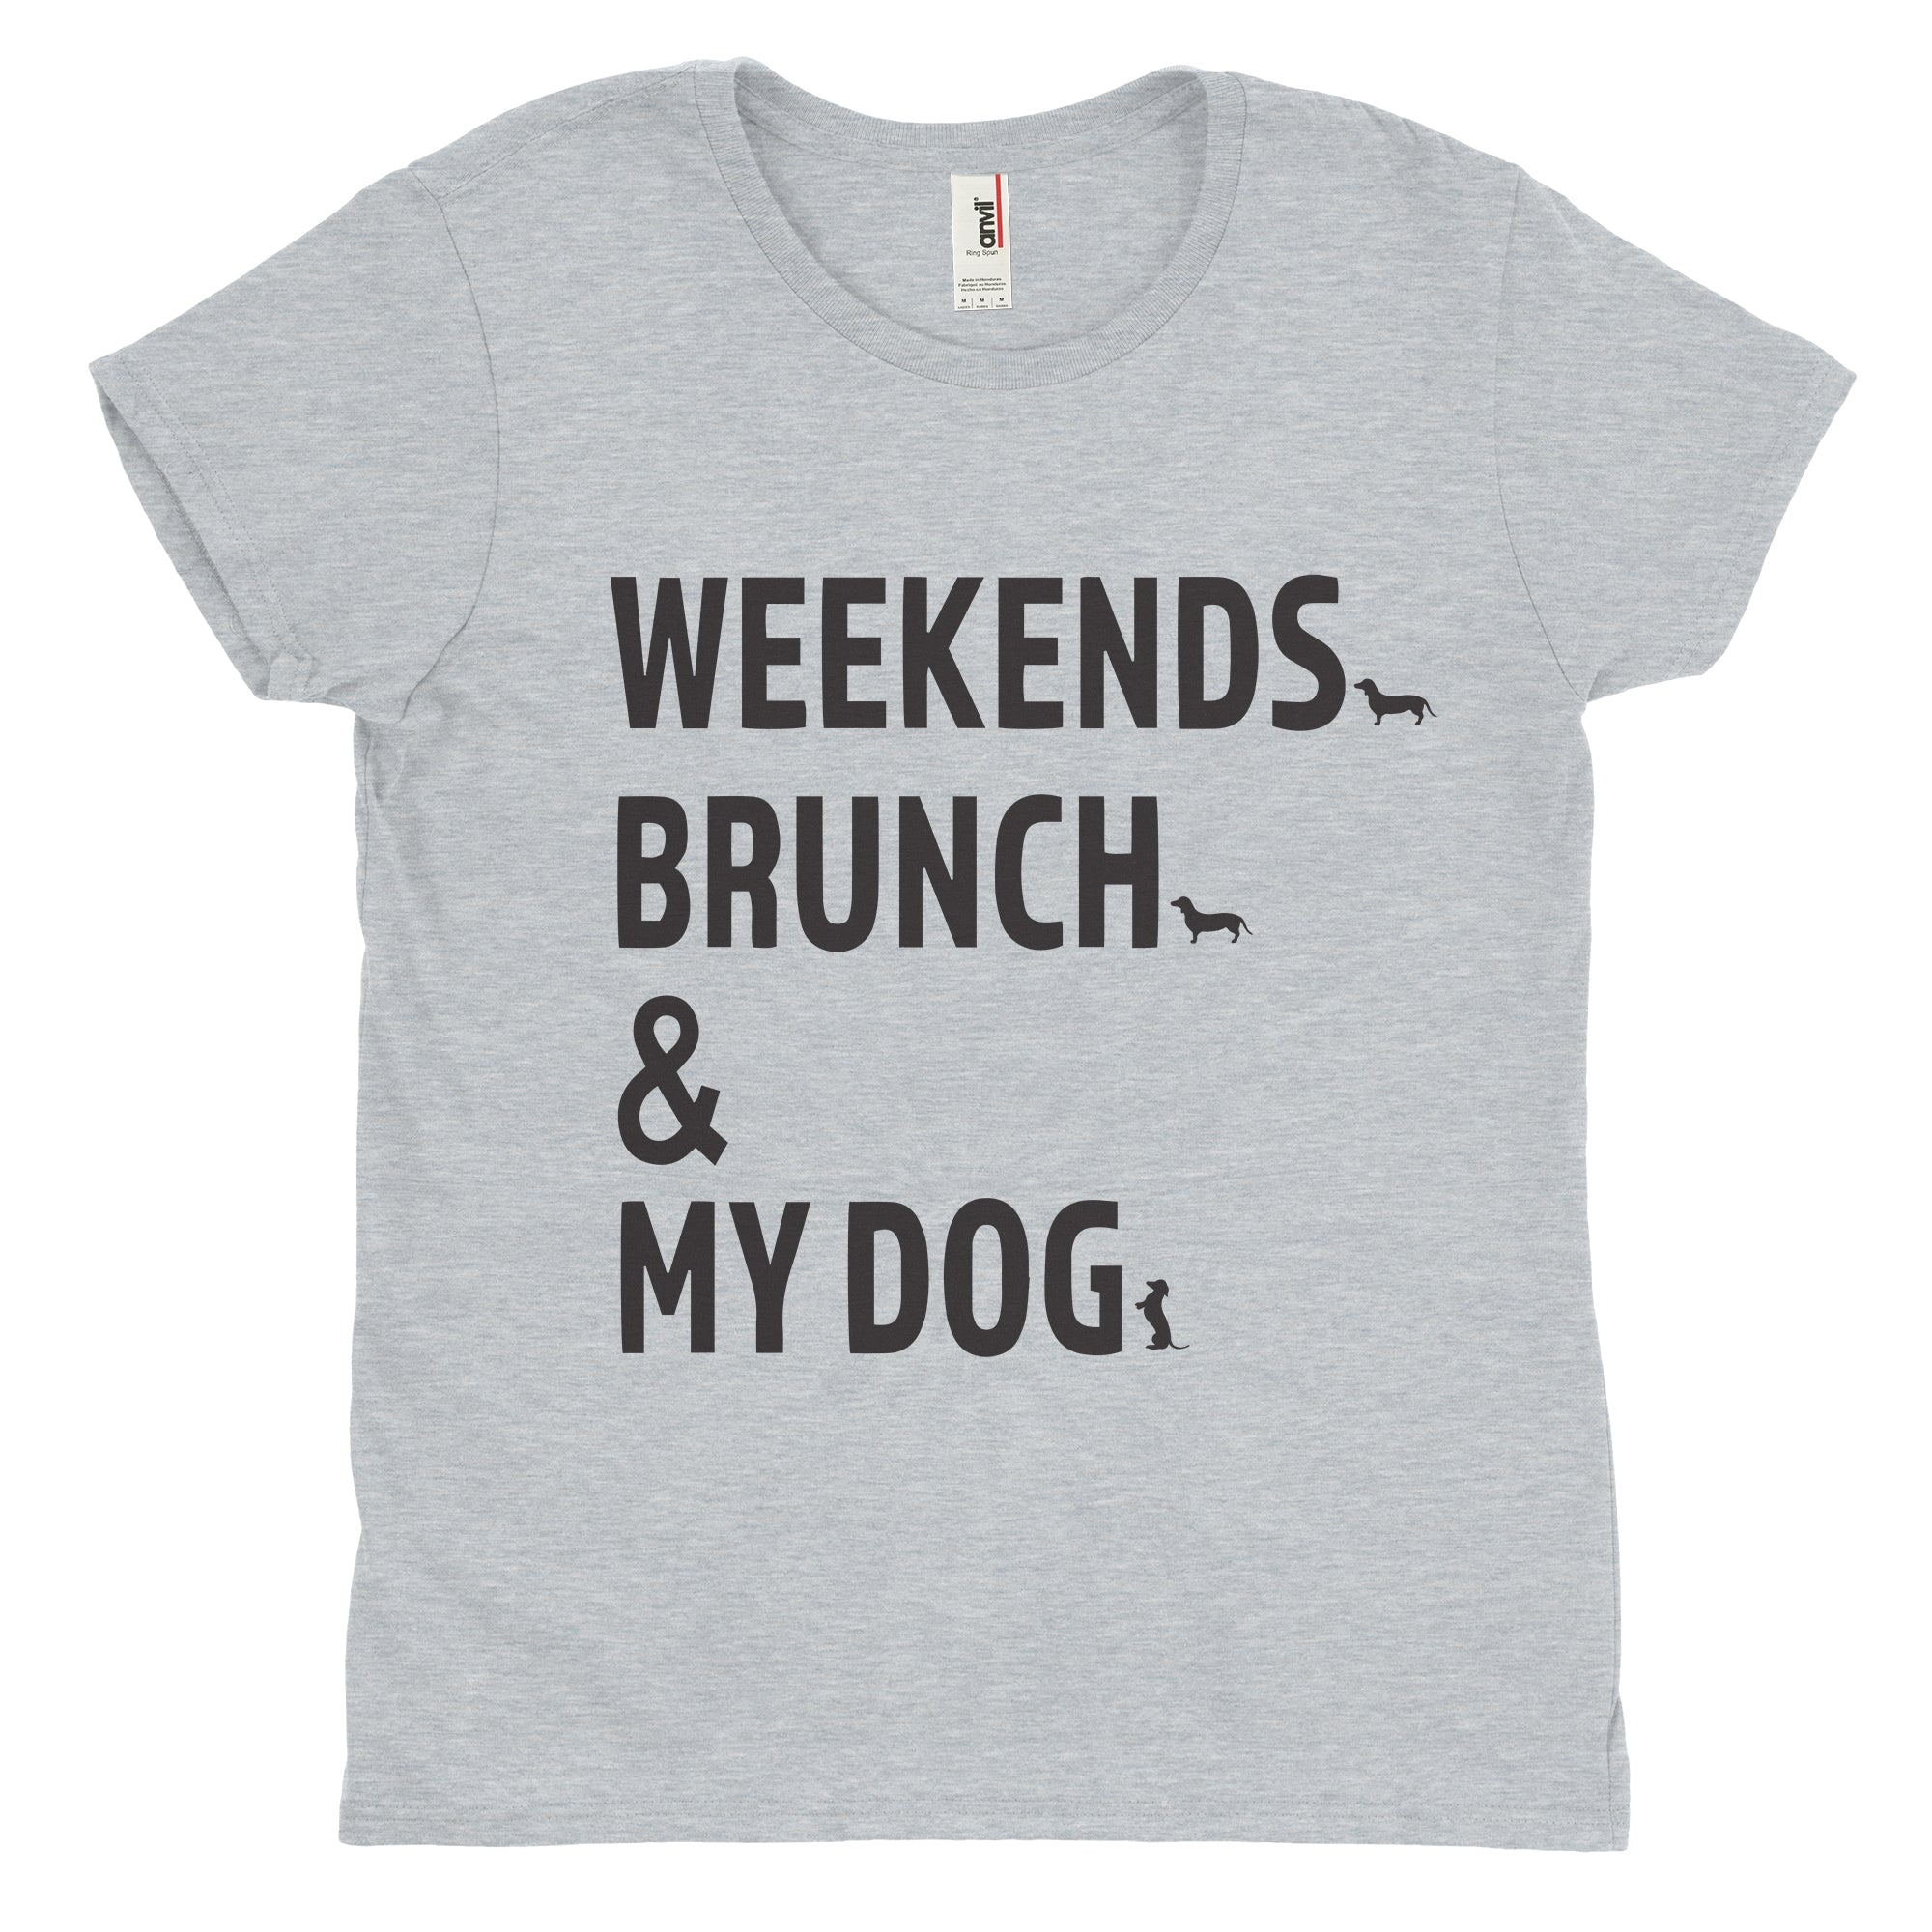 Weekends Brunch & My Dog - Ladies Relaxed Tee